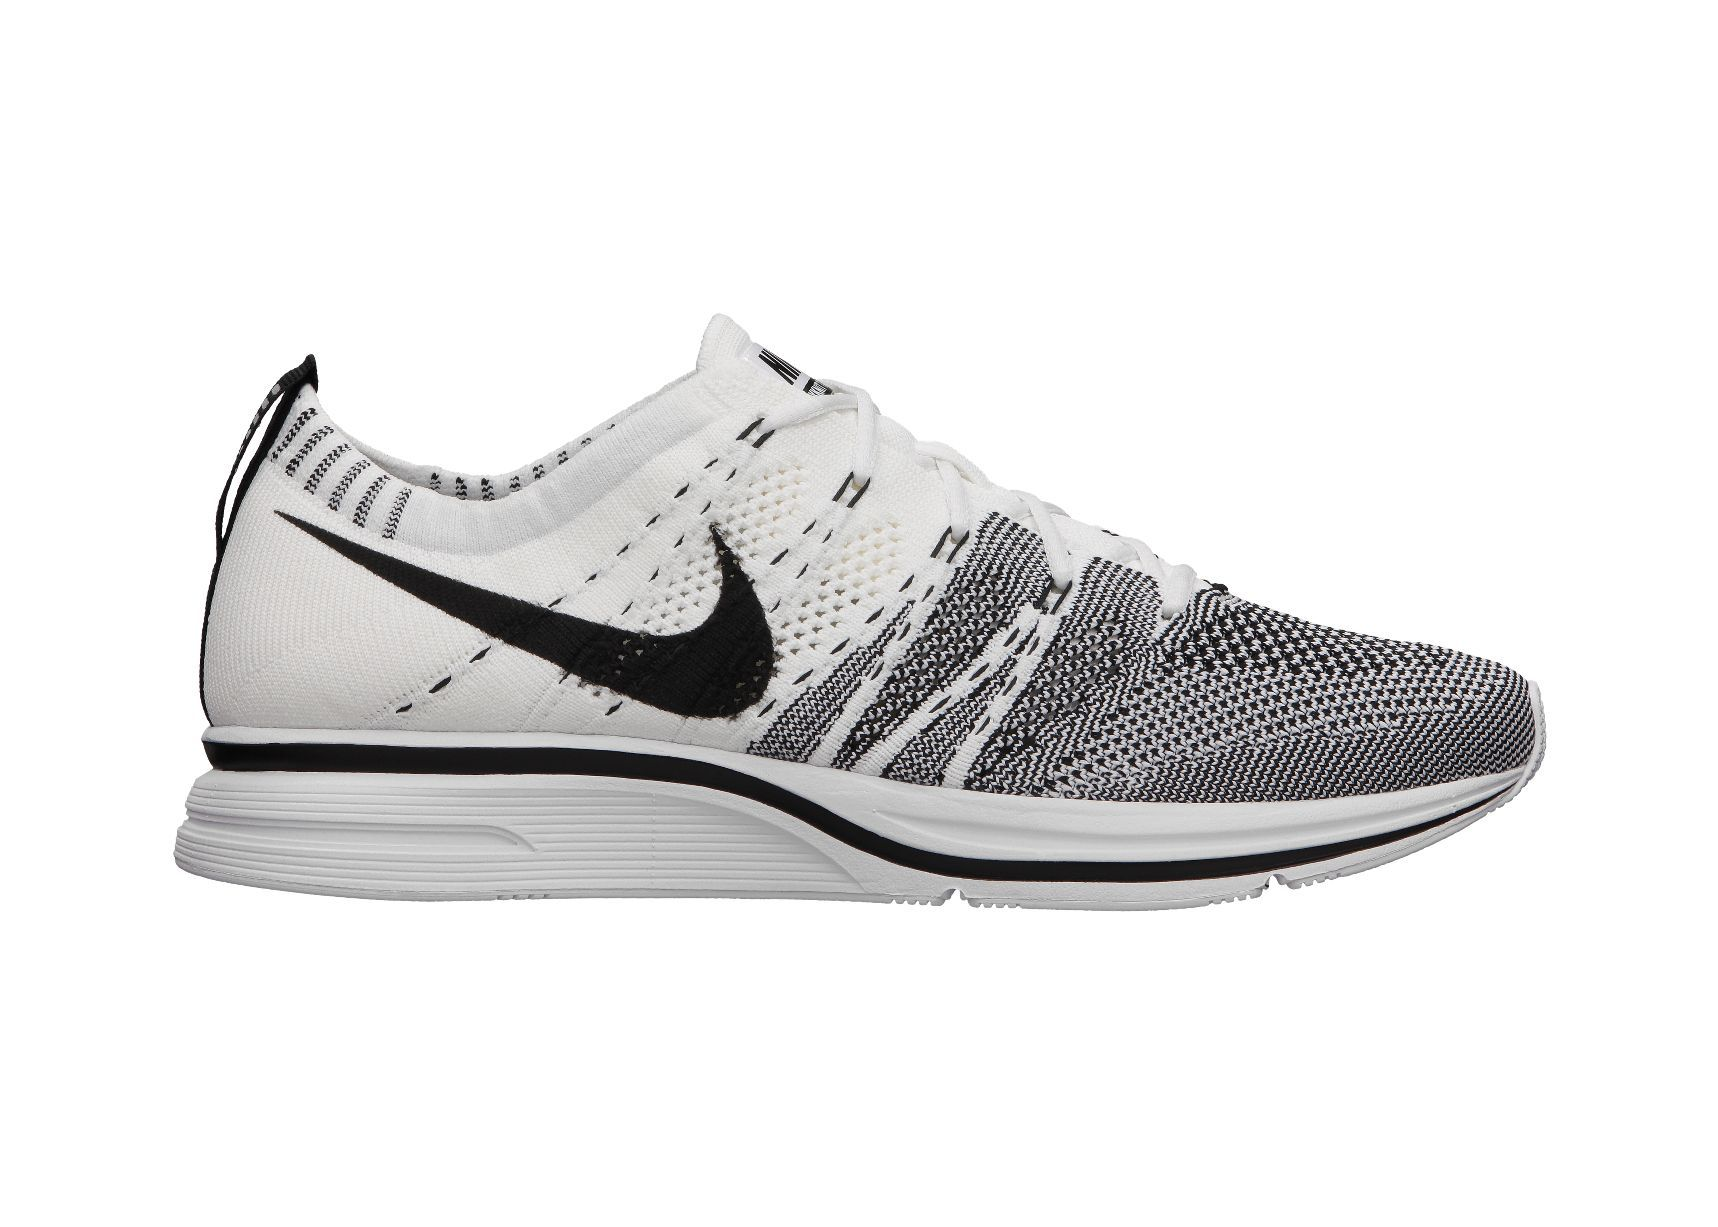 Nike-Flyknit-Trainer-Unisex-Running-Shoe-Mens-Sizing-